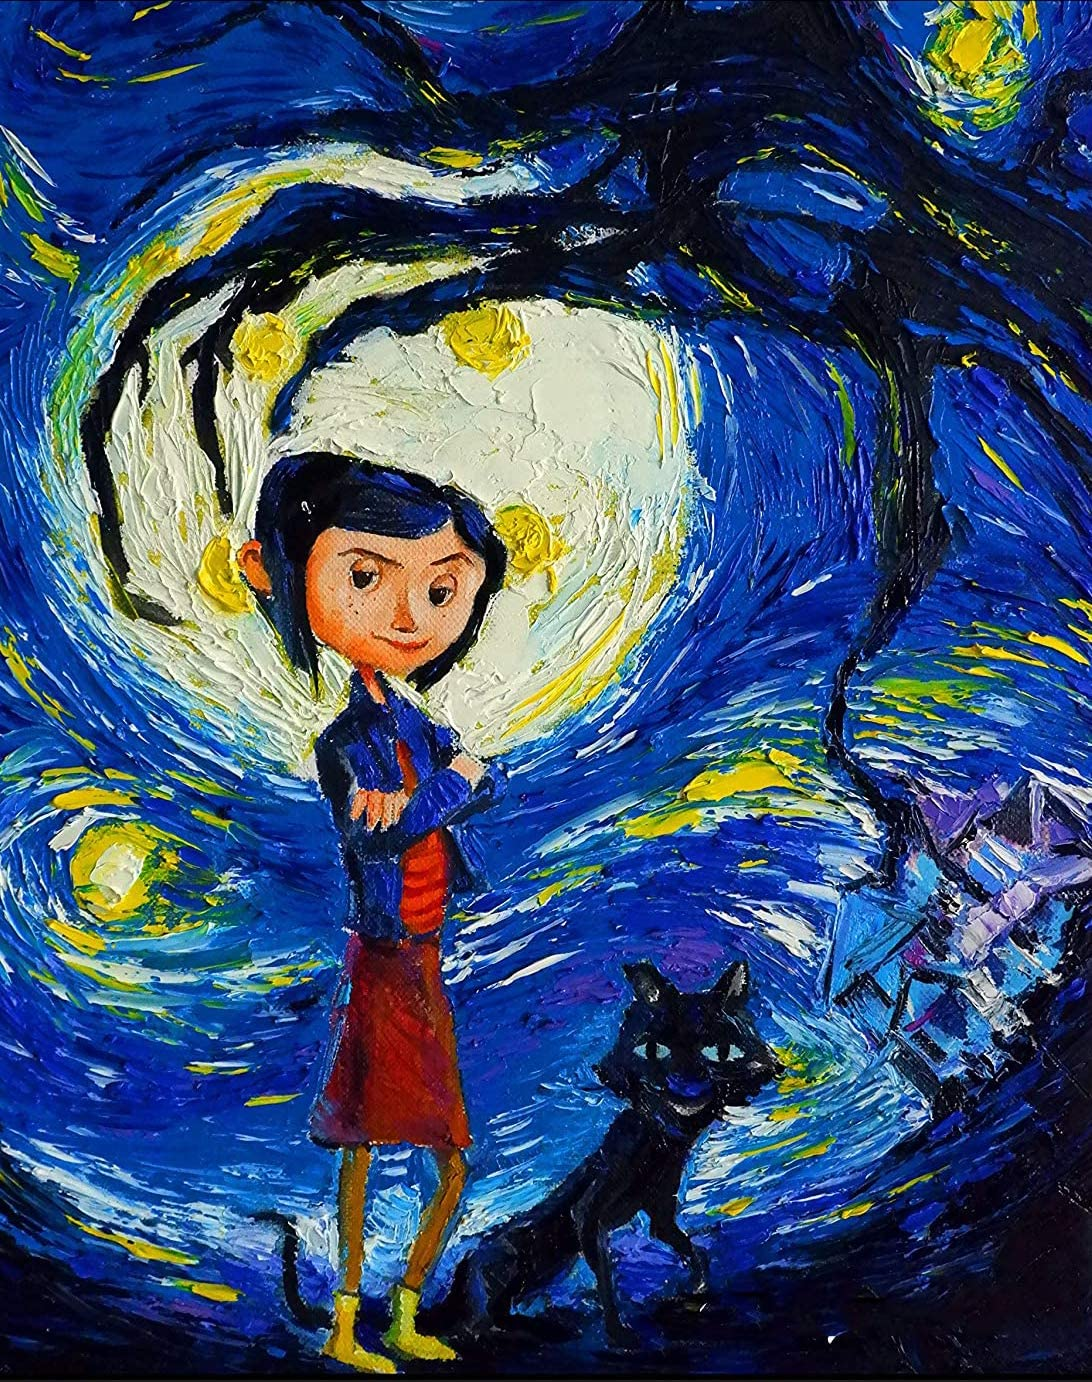 Amazon Com Coraline And Cat Vincent Van Gogh Starry Night Christmas Home 5d Full Drill Diamond Painting Kit Diy Diamond Rhinestone Painting Kits For Adults And Children Halloween 11 8x15 8in